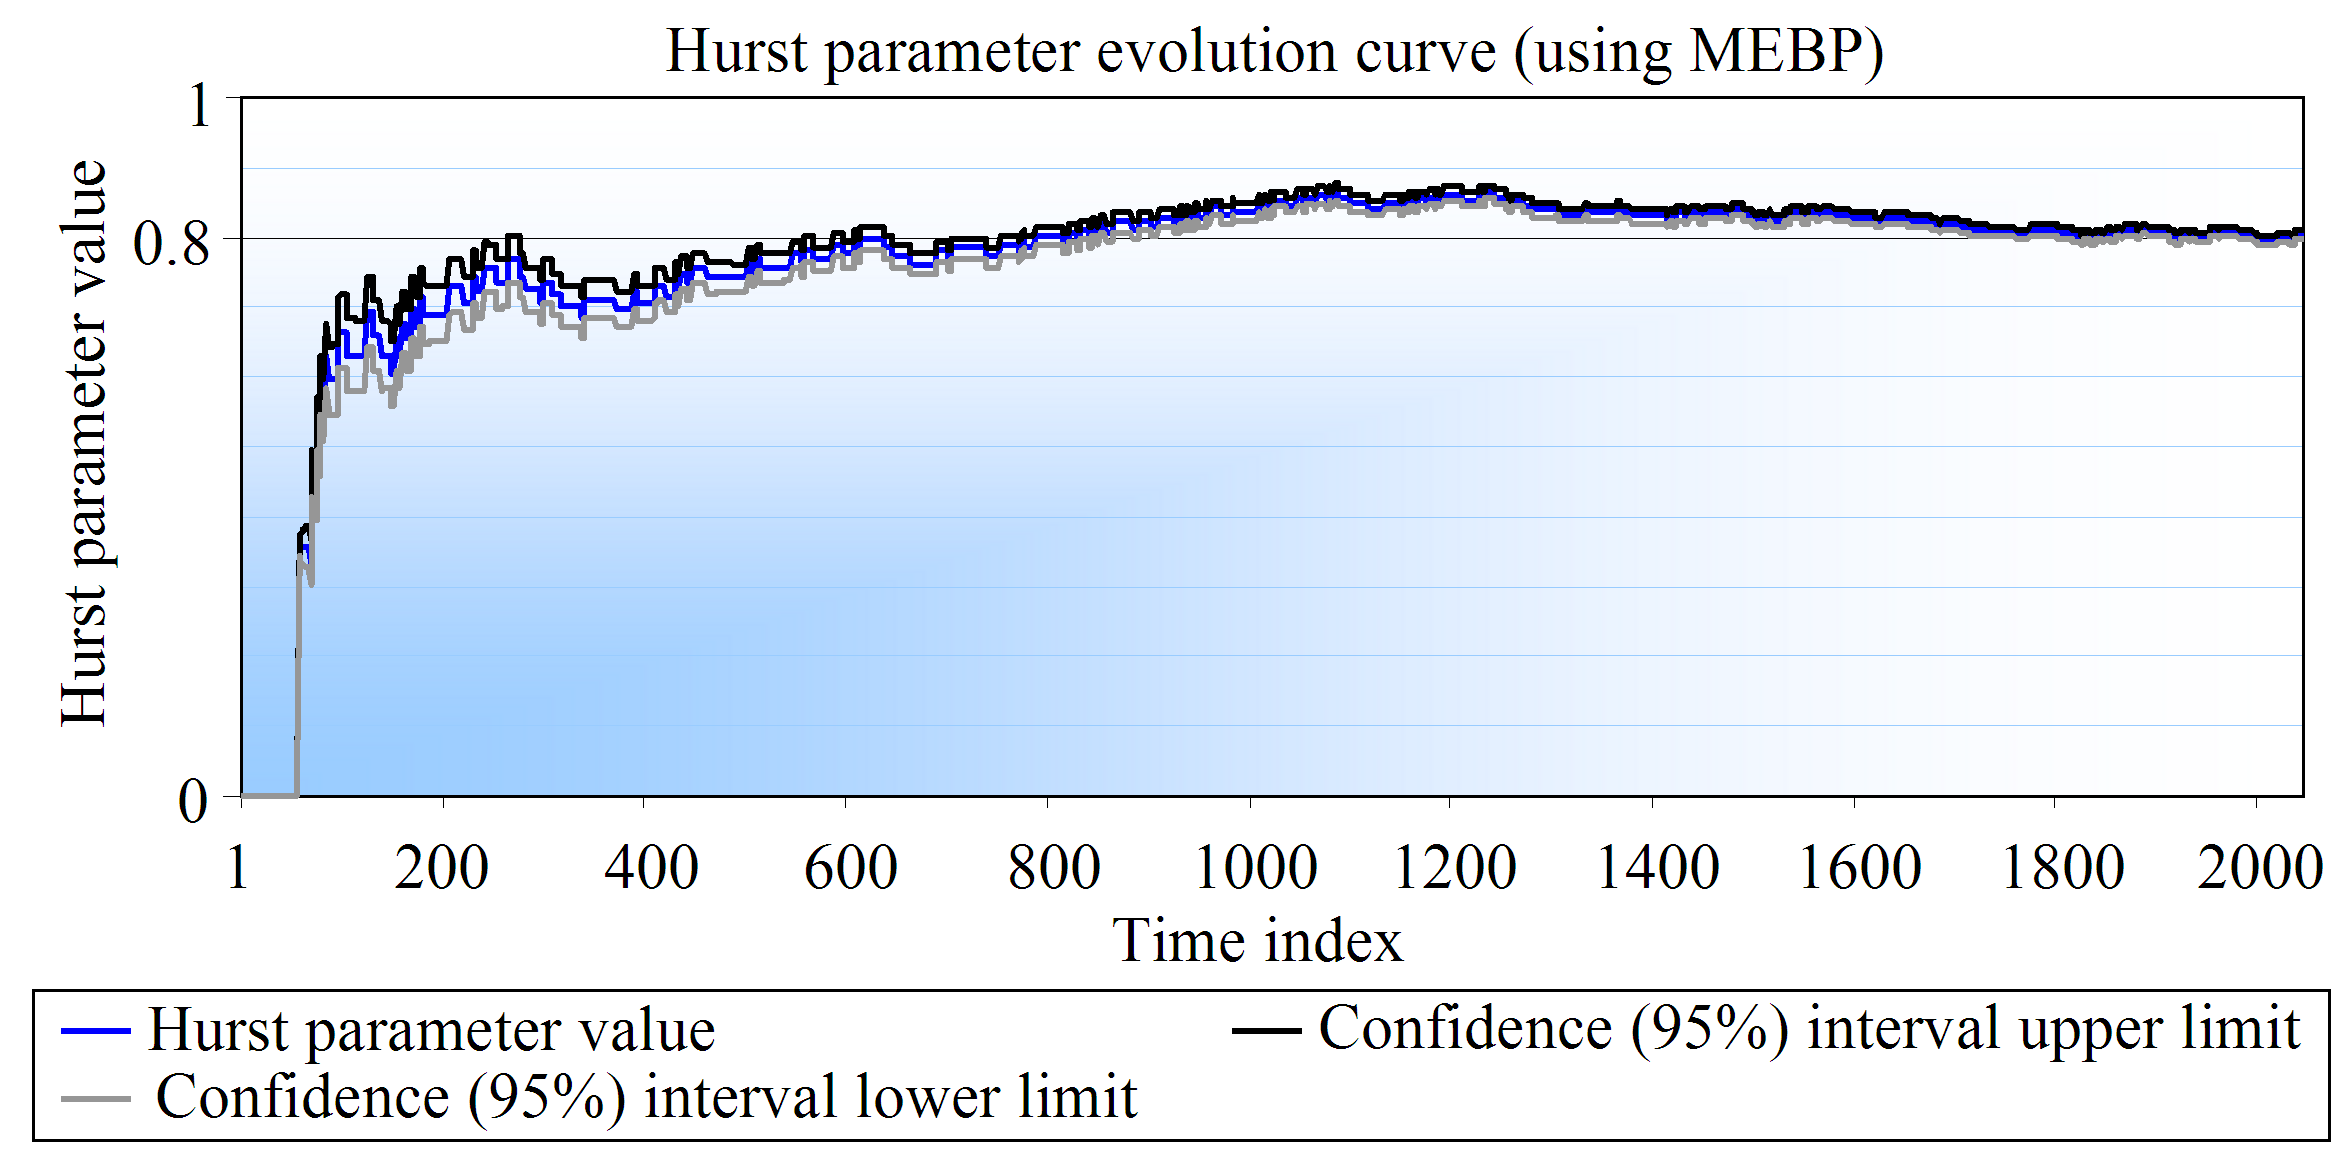 Figure 3.5 and Figure 3.6 depict two evolution curves obtained through the usage of the point-by-point estimators developed along this research work.